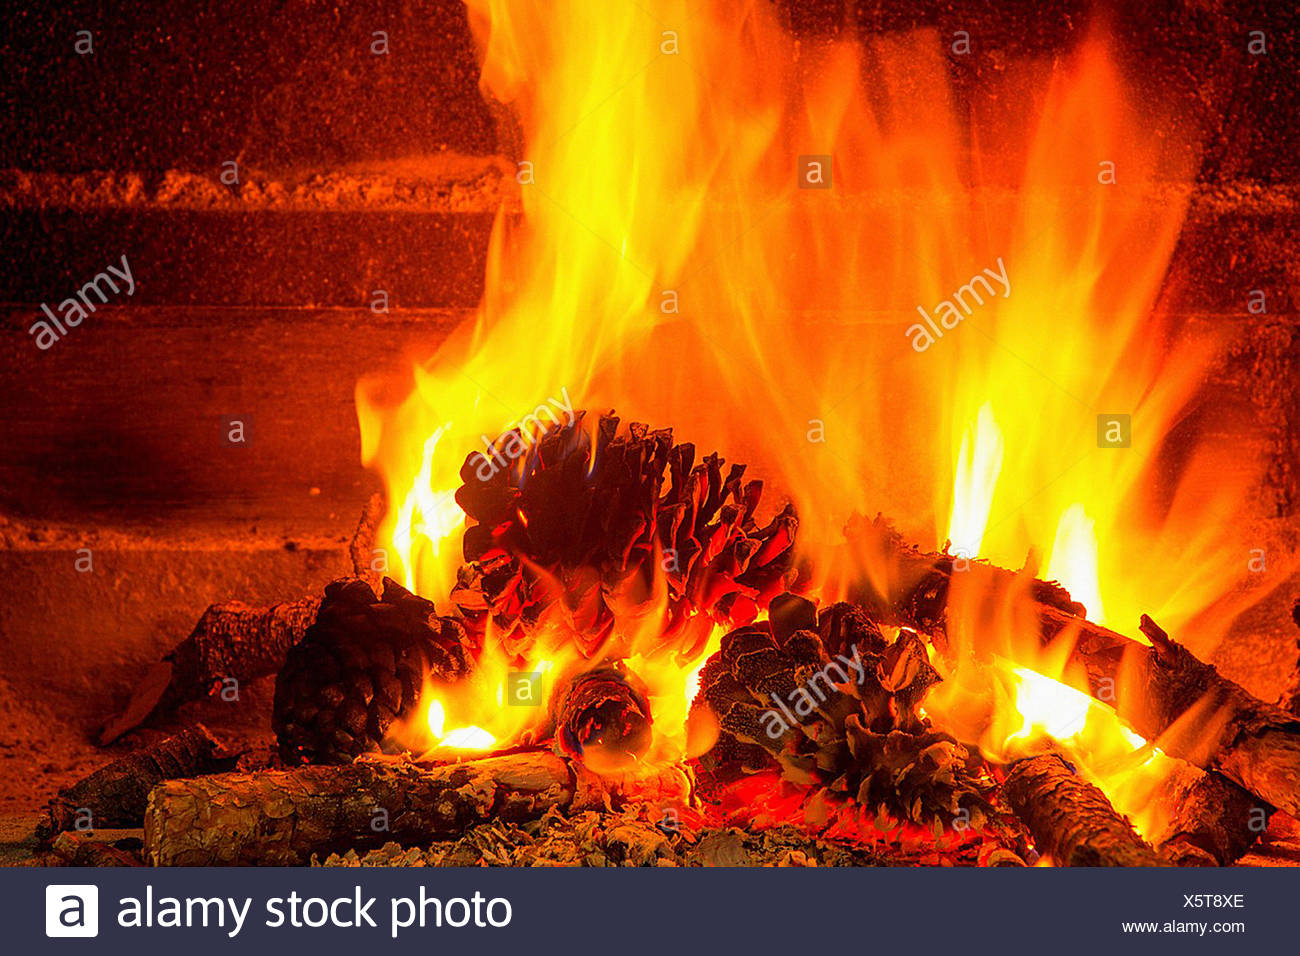 Burning Firewood In Chimney With Pine Cones And Fire Stock Photo